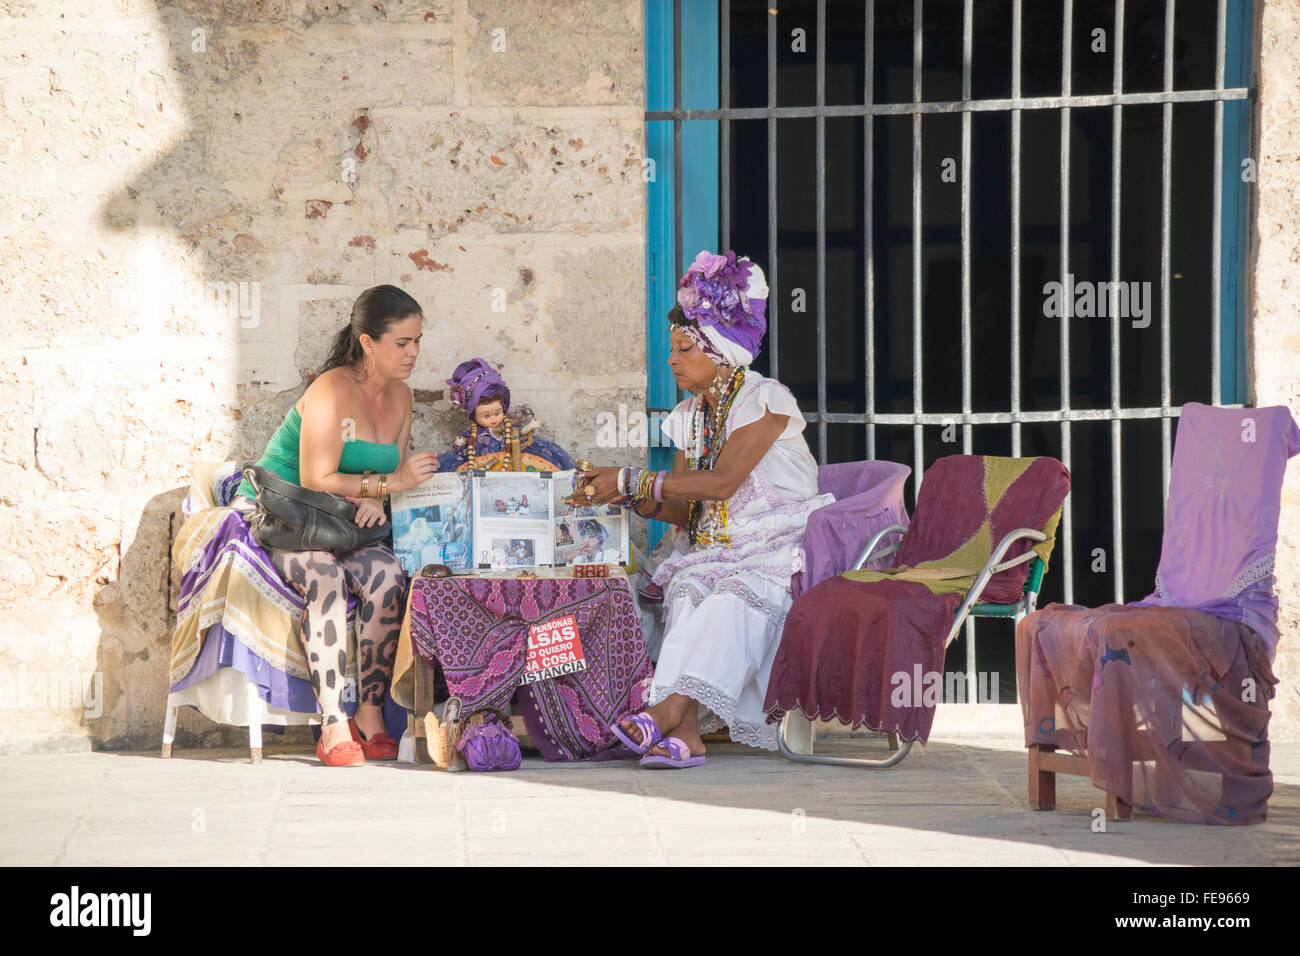 One of the fortune tellers who casts cards for tourists in Old Havana Stock Photo